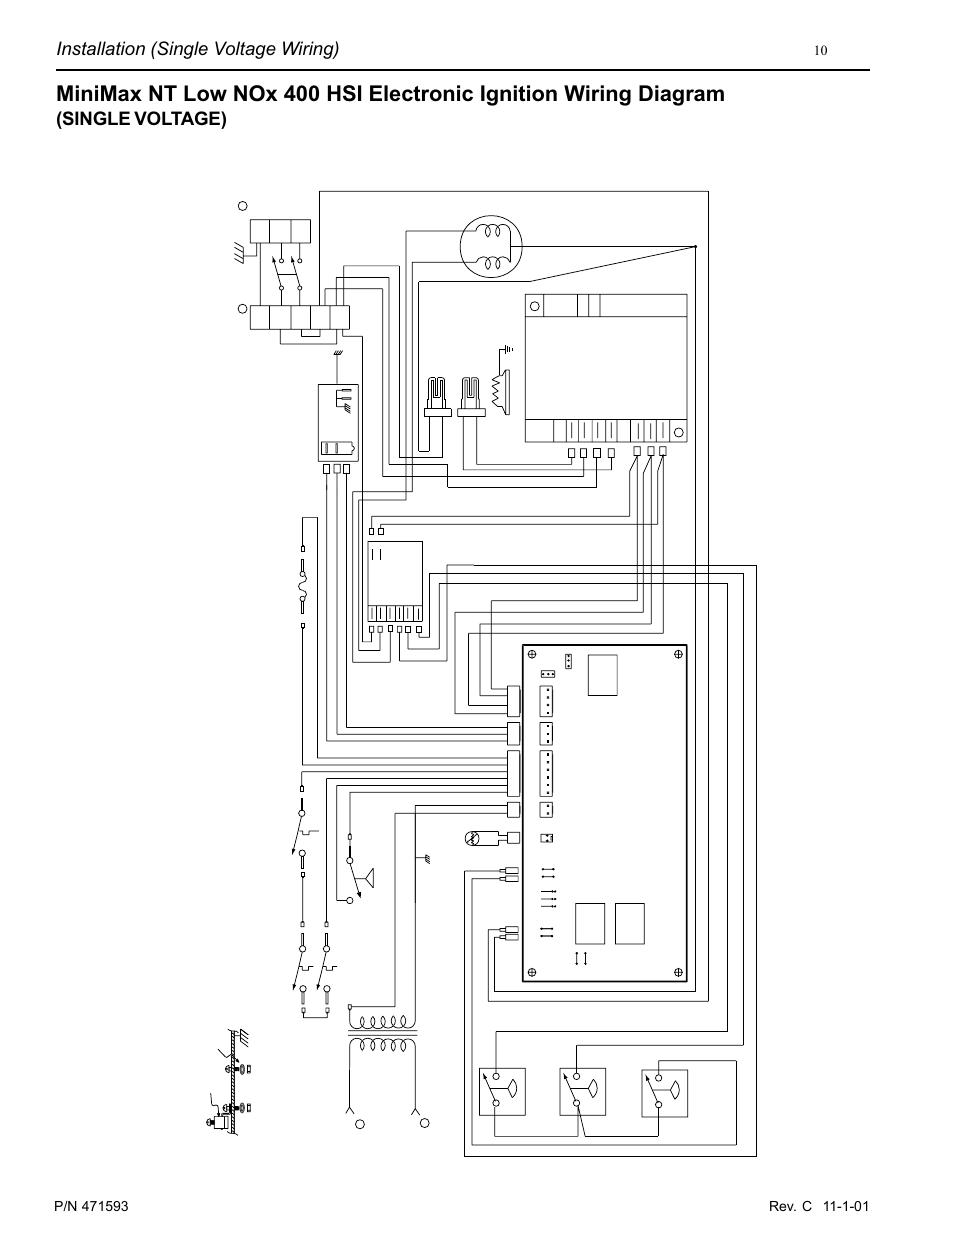 Ul Appliance Wiring Diagram Circuit Schema Ge Profile Dryer Installation Single Voltage Minimax Nt